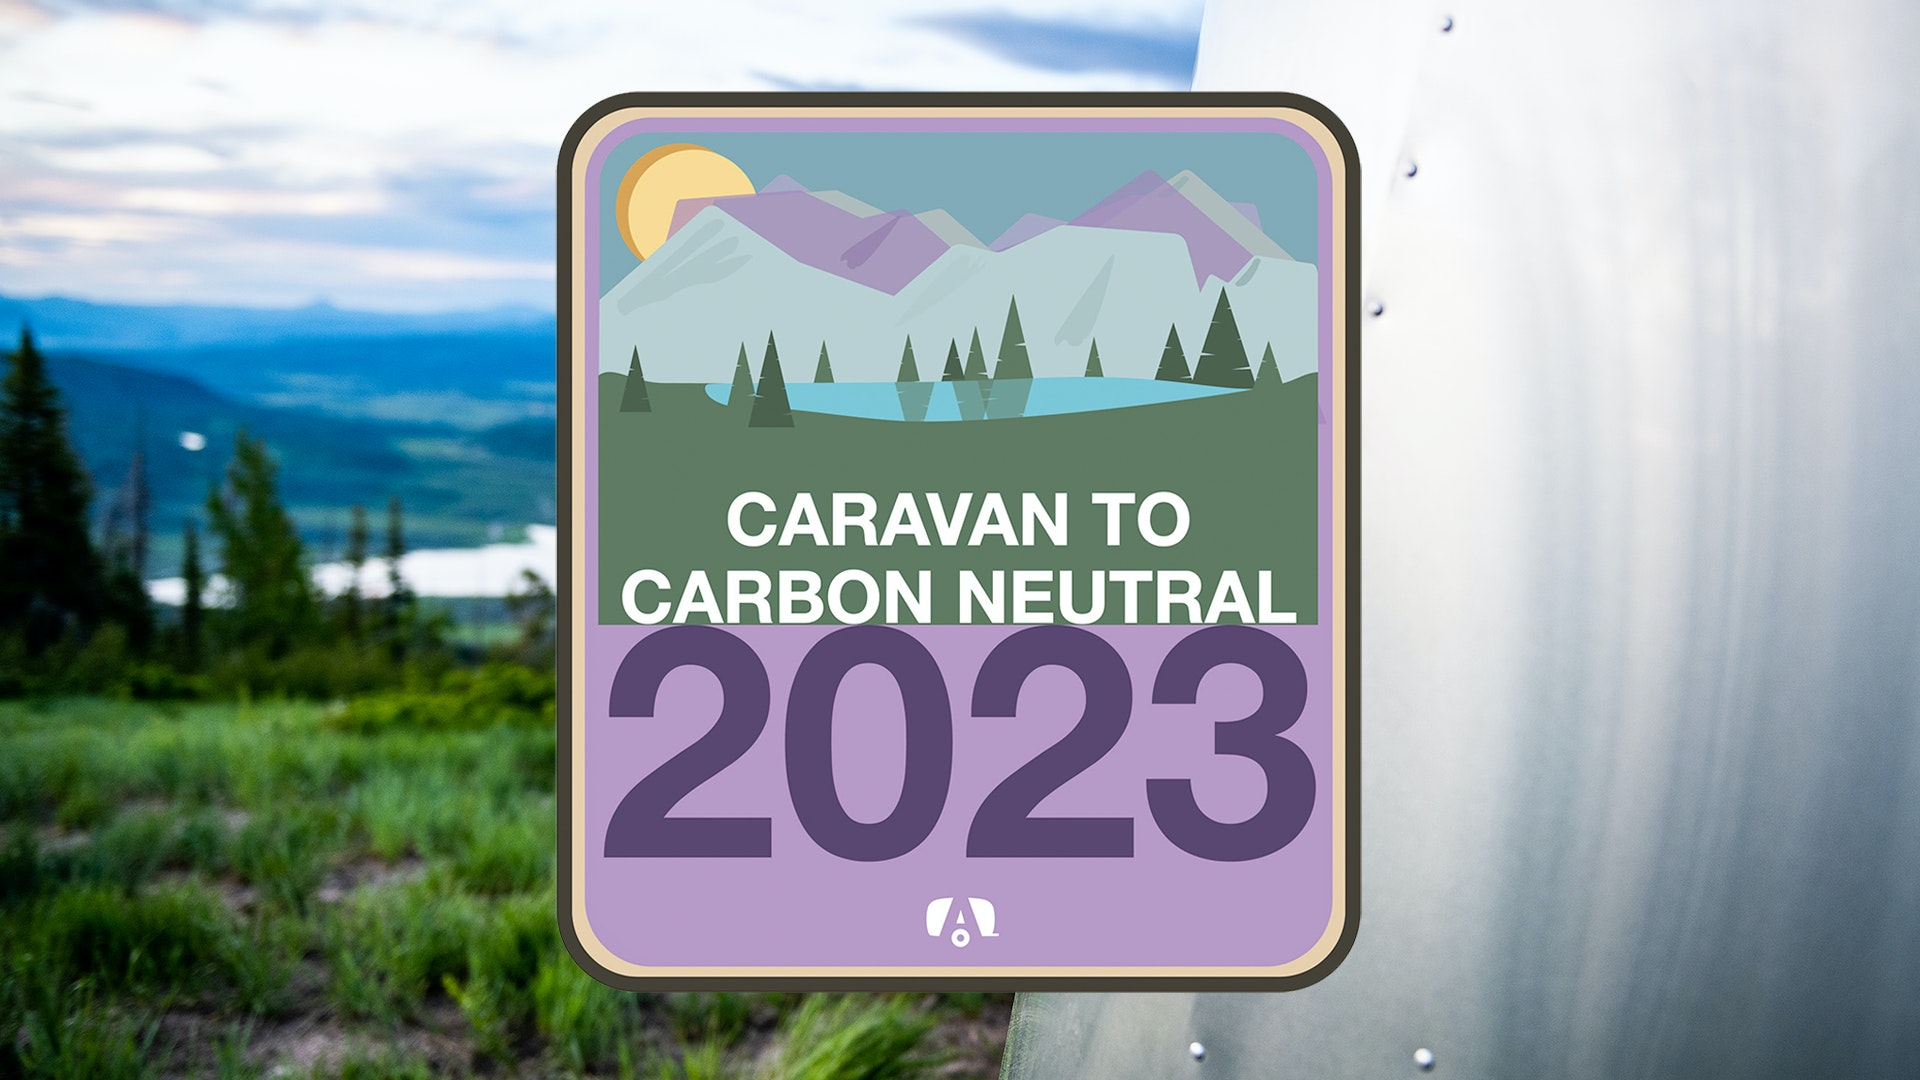 Caravan-to-Carbon-Neutral-2023